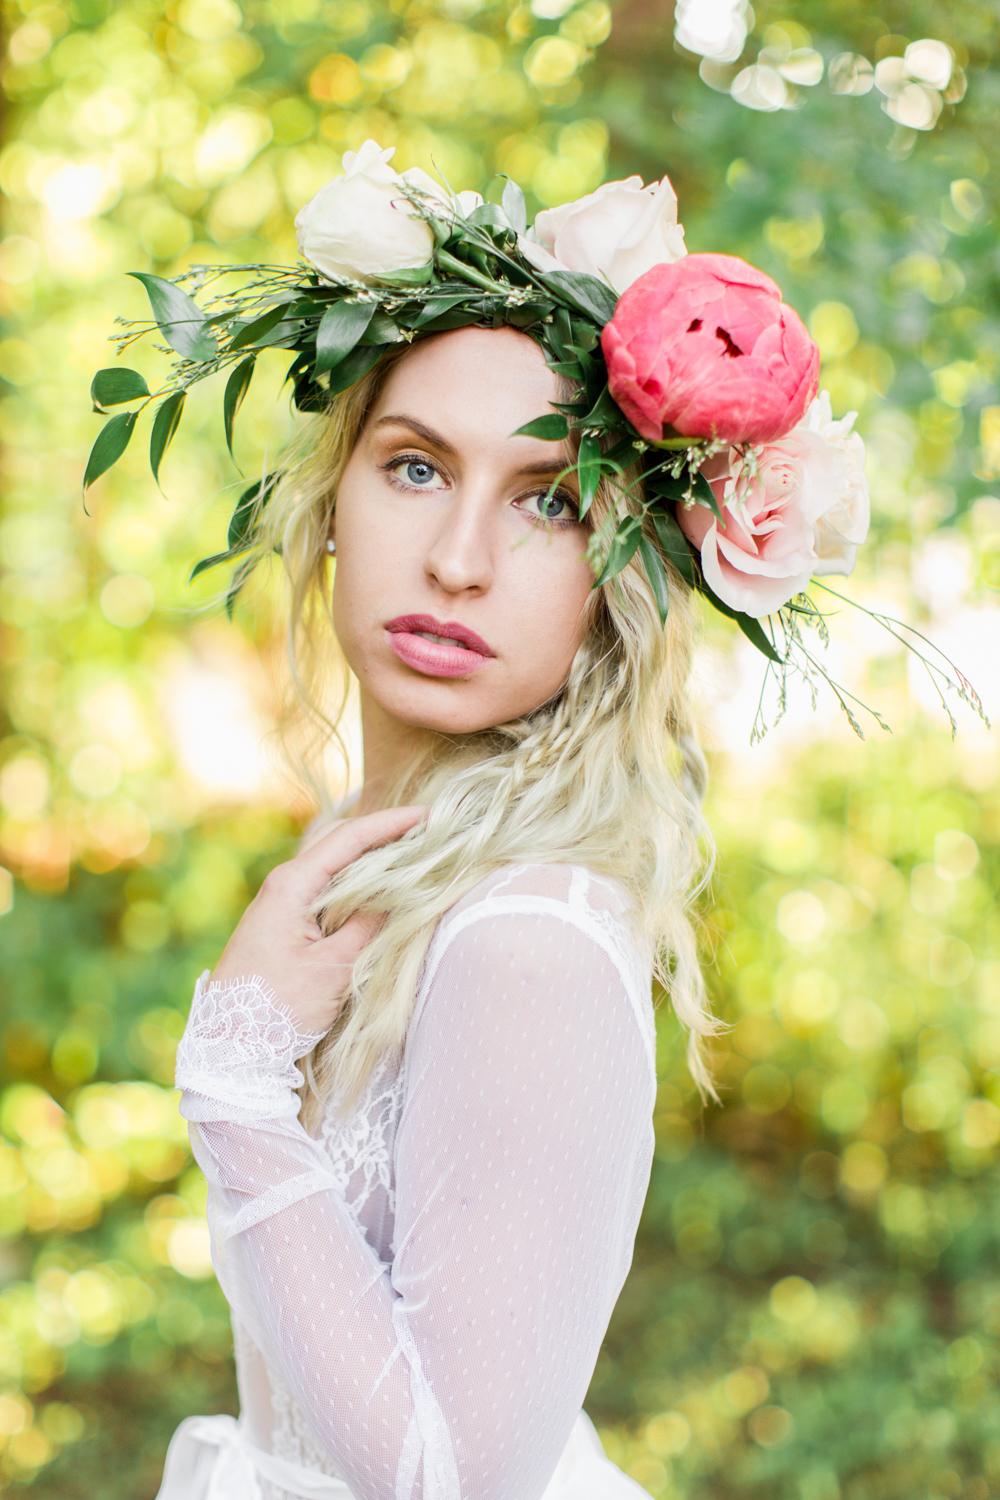 Natalie Mizgalski wearing a La Tulipe flower crown and Madalyn Joy Designs bodysuit.